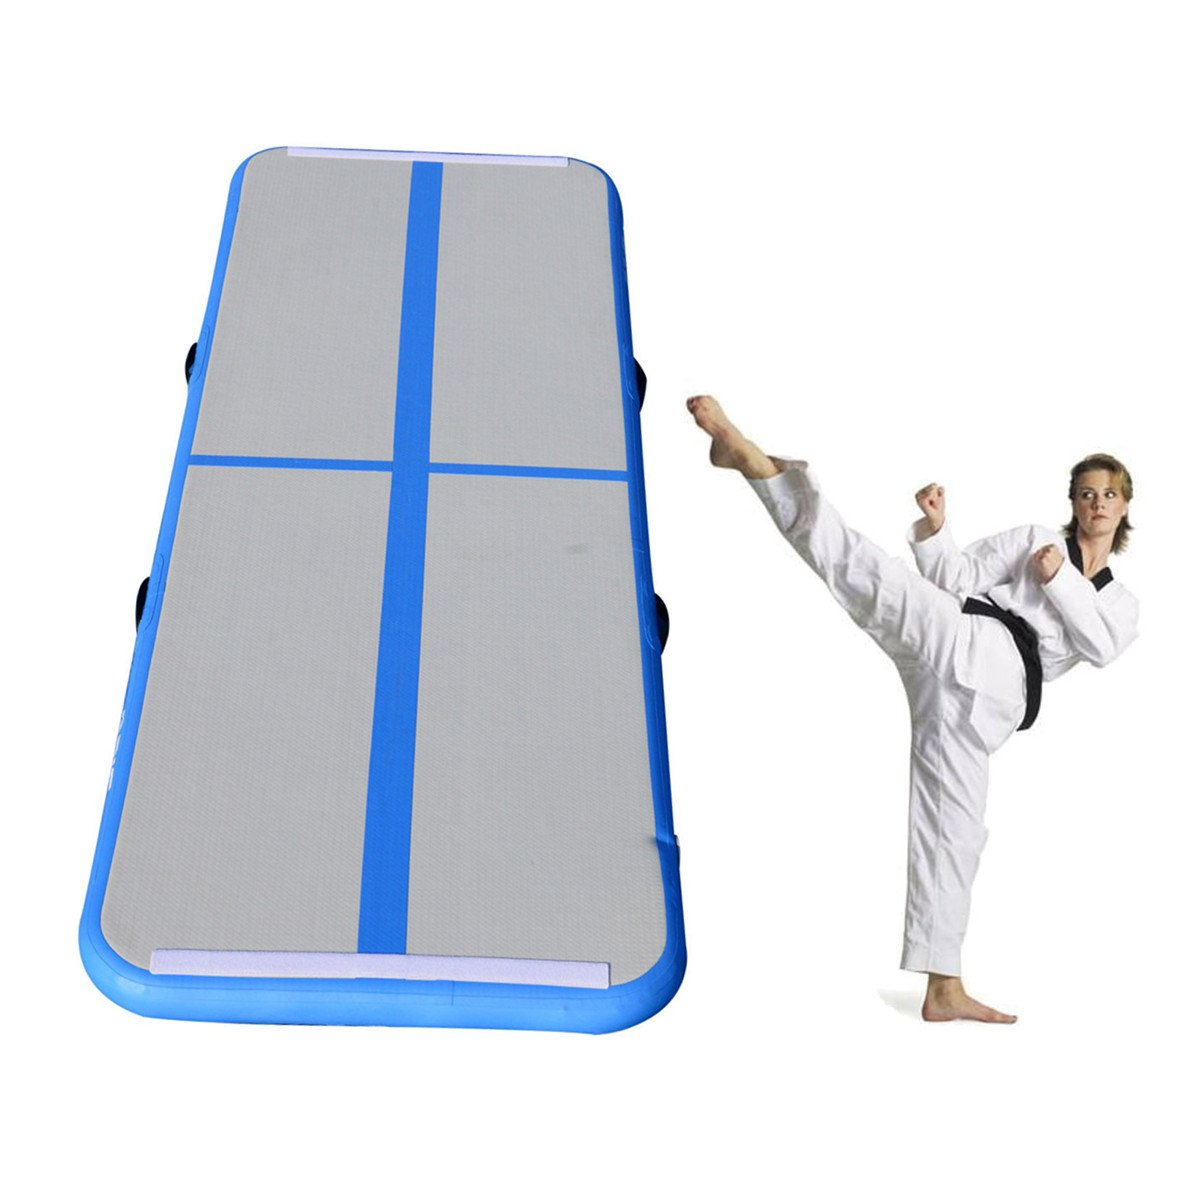 online today foldable promat product cheer gymnastics mats buy home folding for the mat perfect gym web